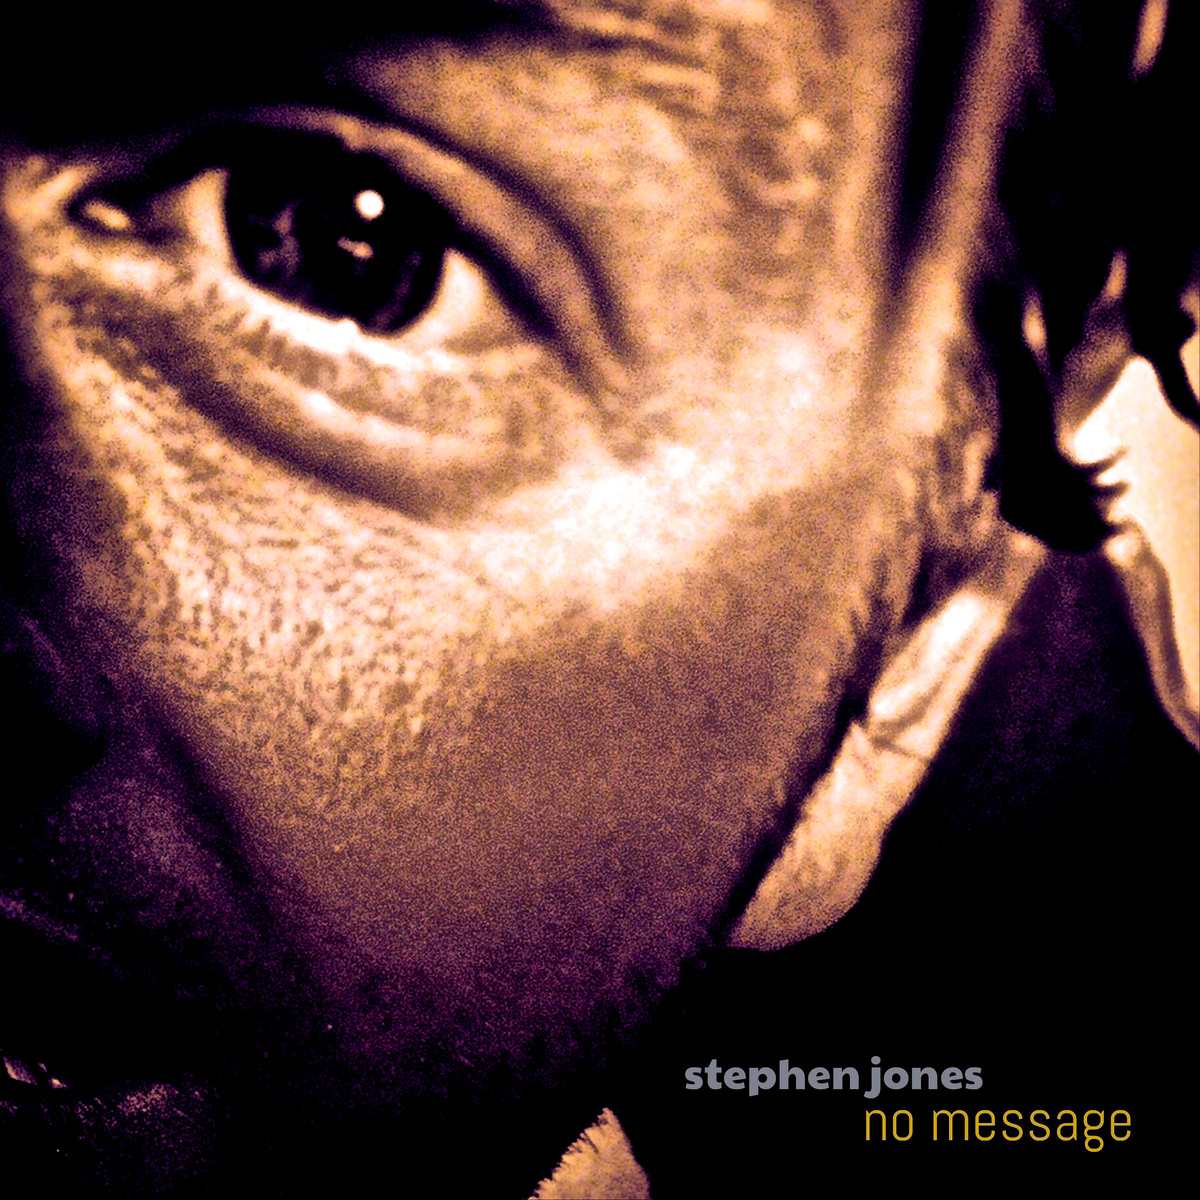 STEPHEN JONES - NO MESSAGE